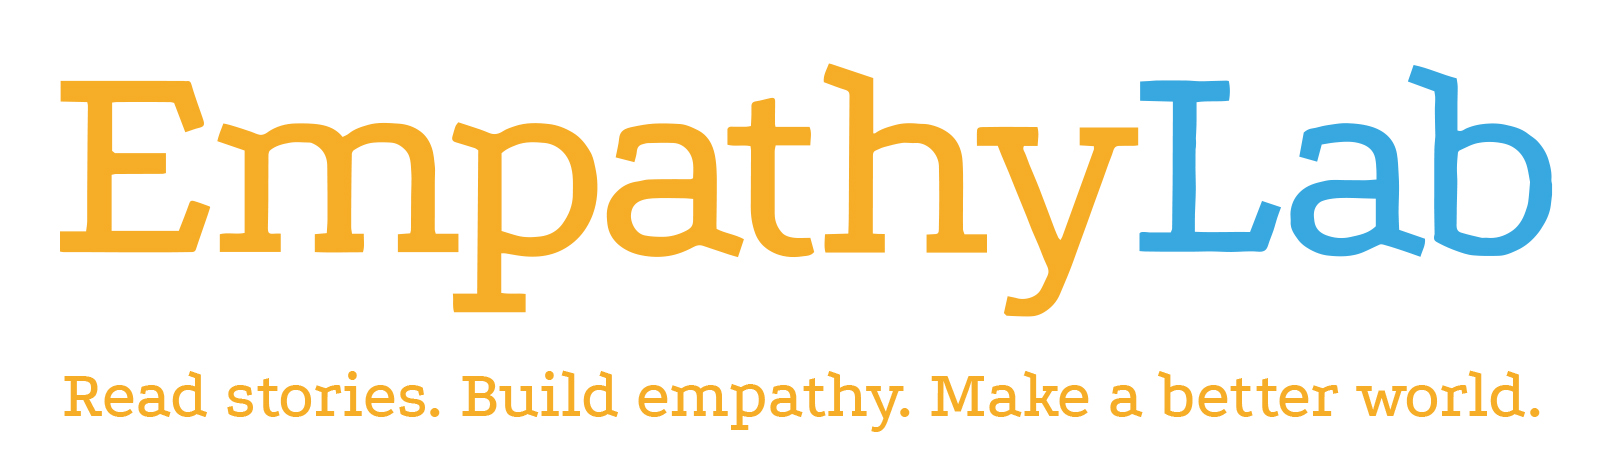 Primary Read for Empathy collection 2021